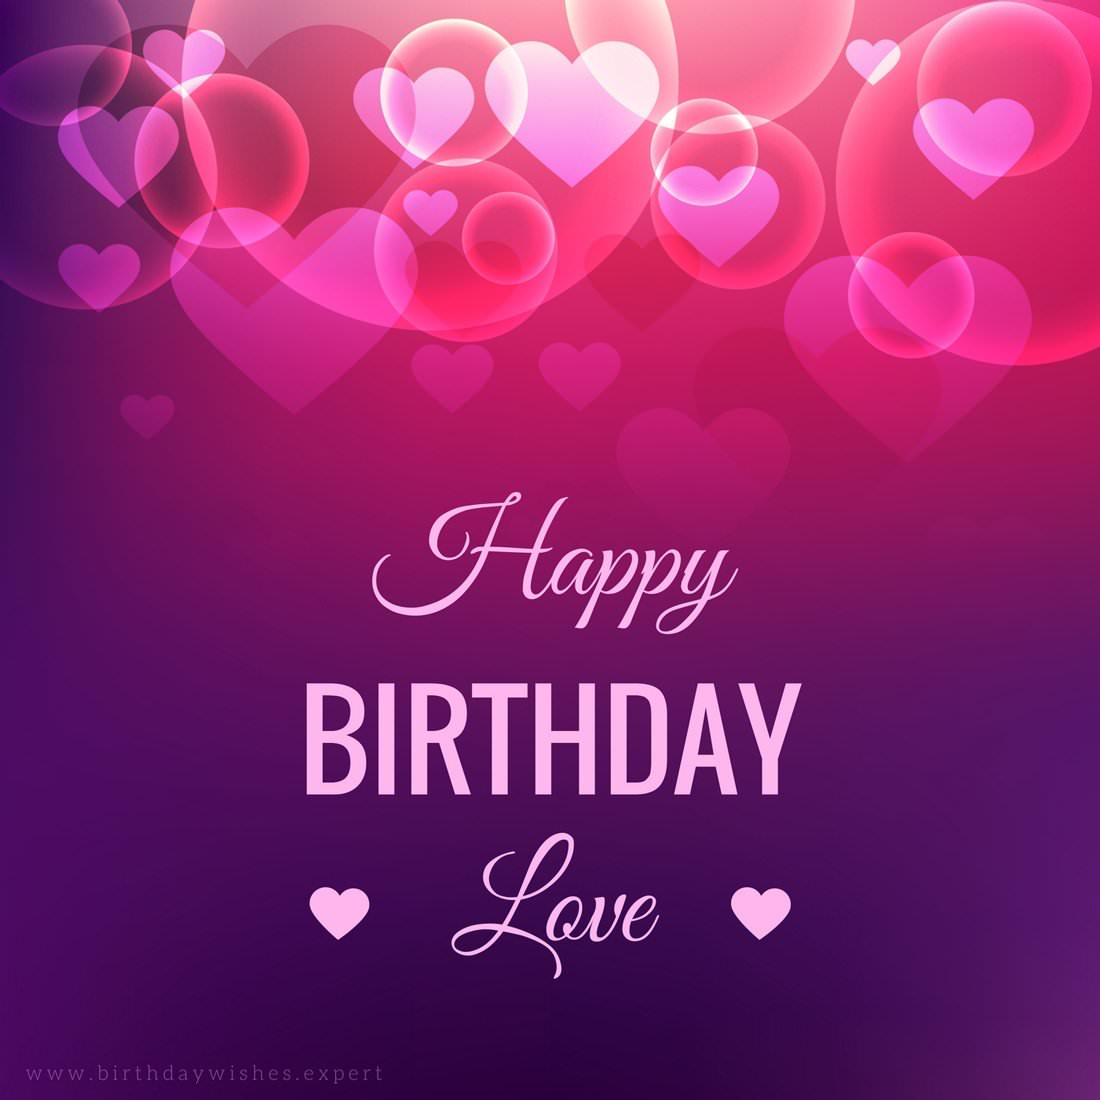 Happy Birthday Wishes For Girlfriend with Images - TrendsInf